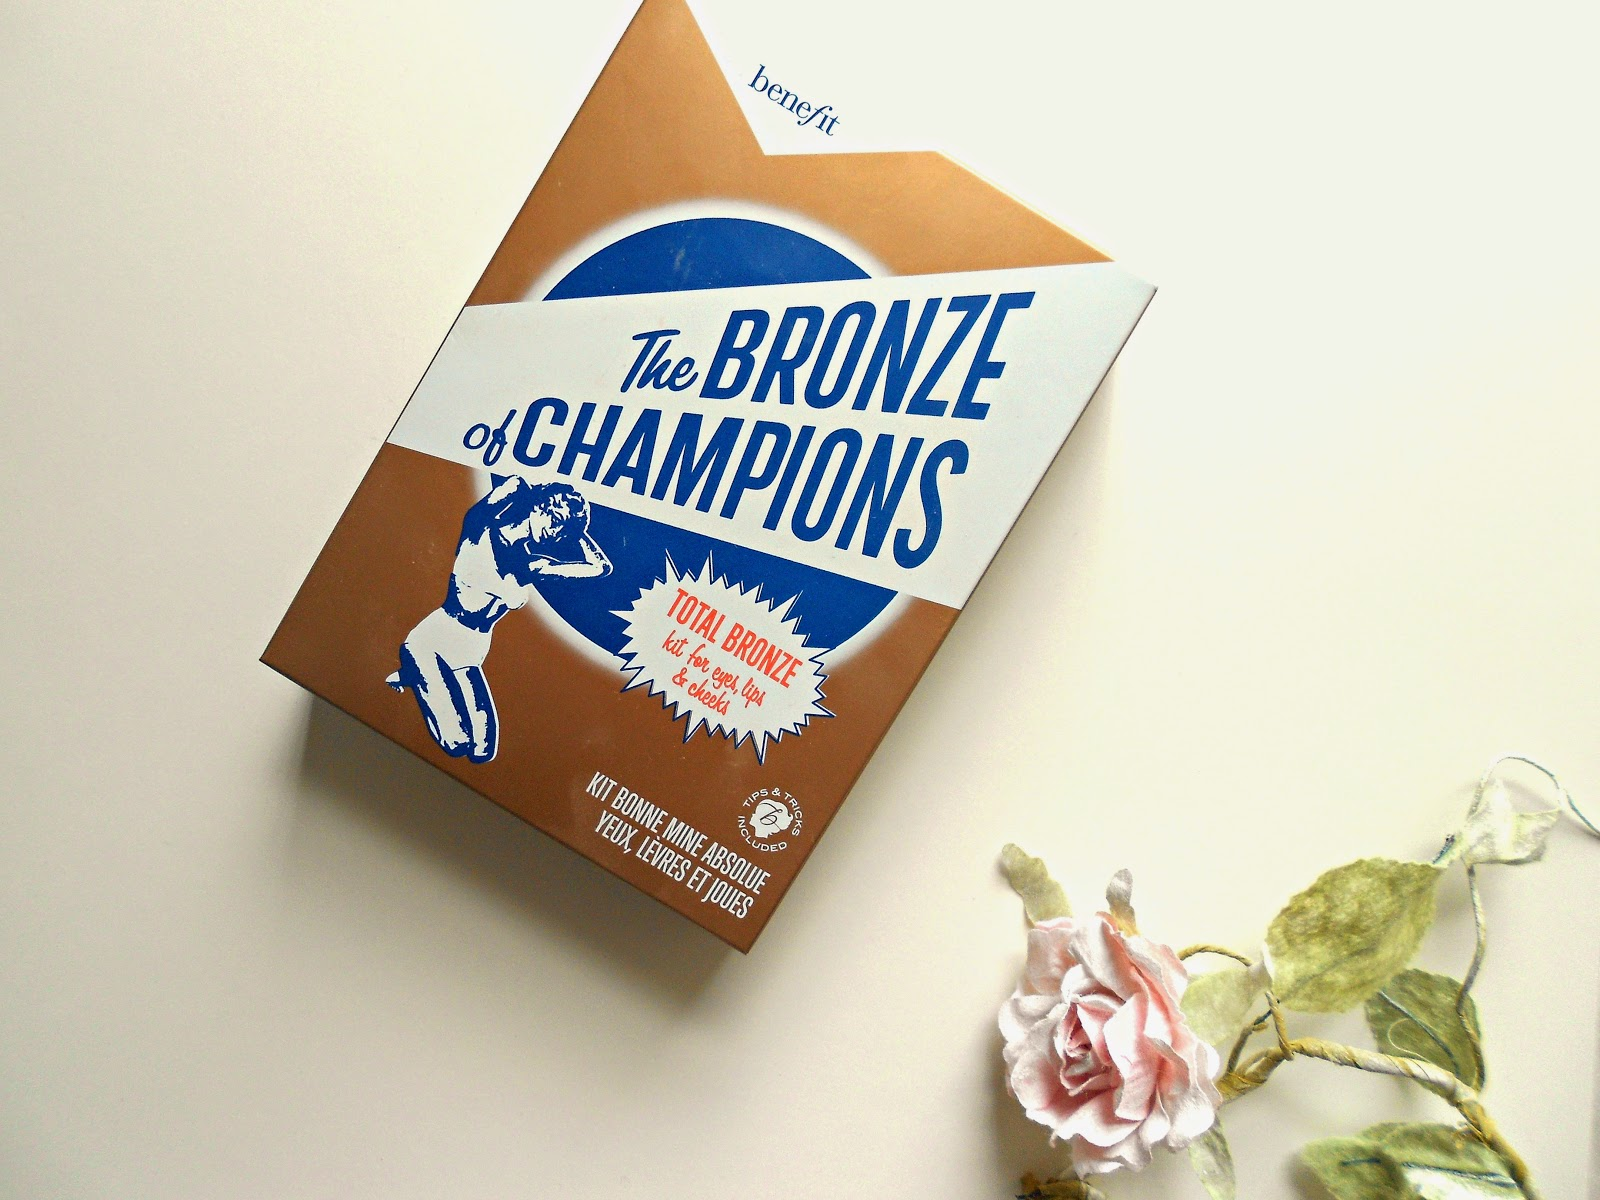 The Bronze of Champions by Benefit Review